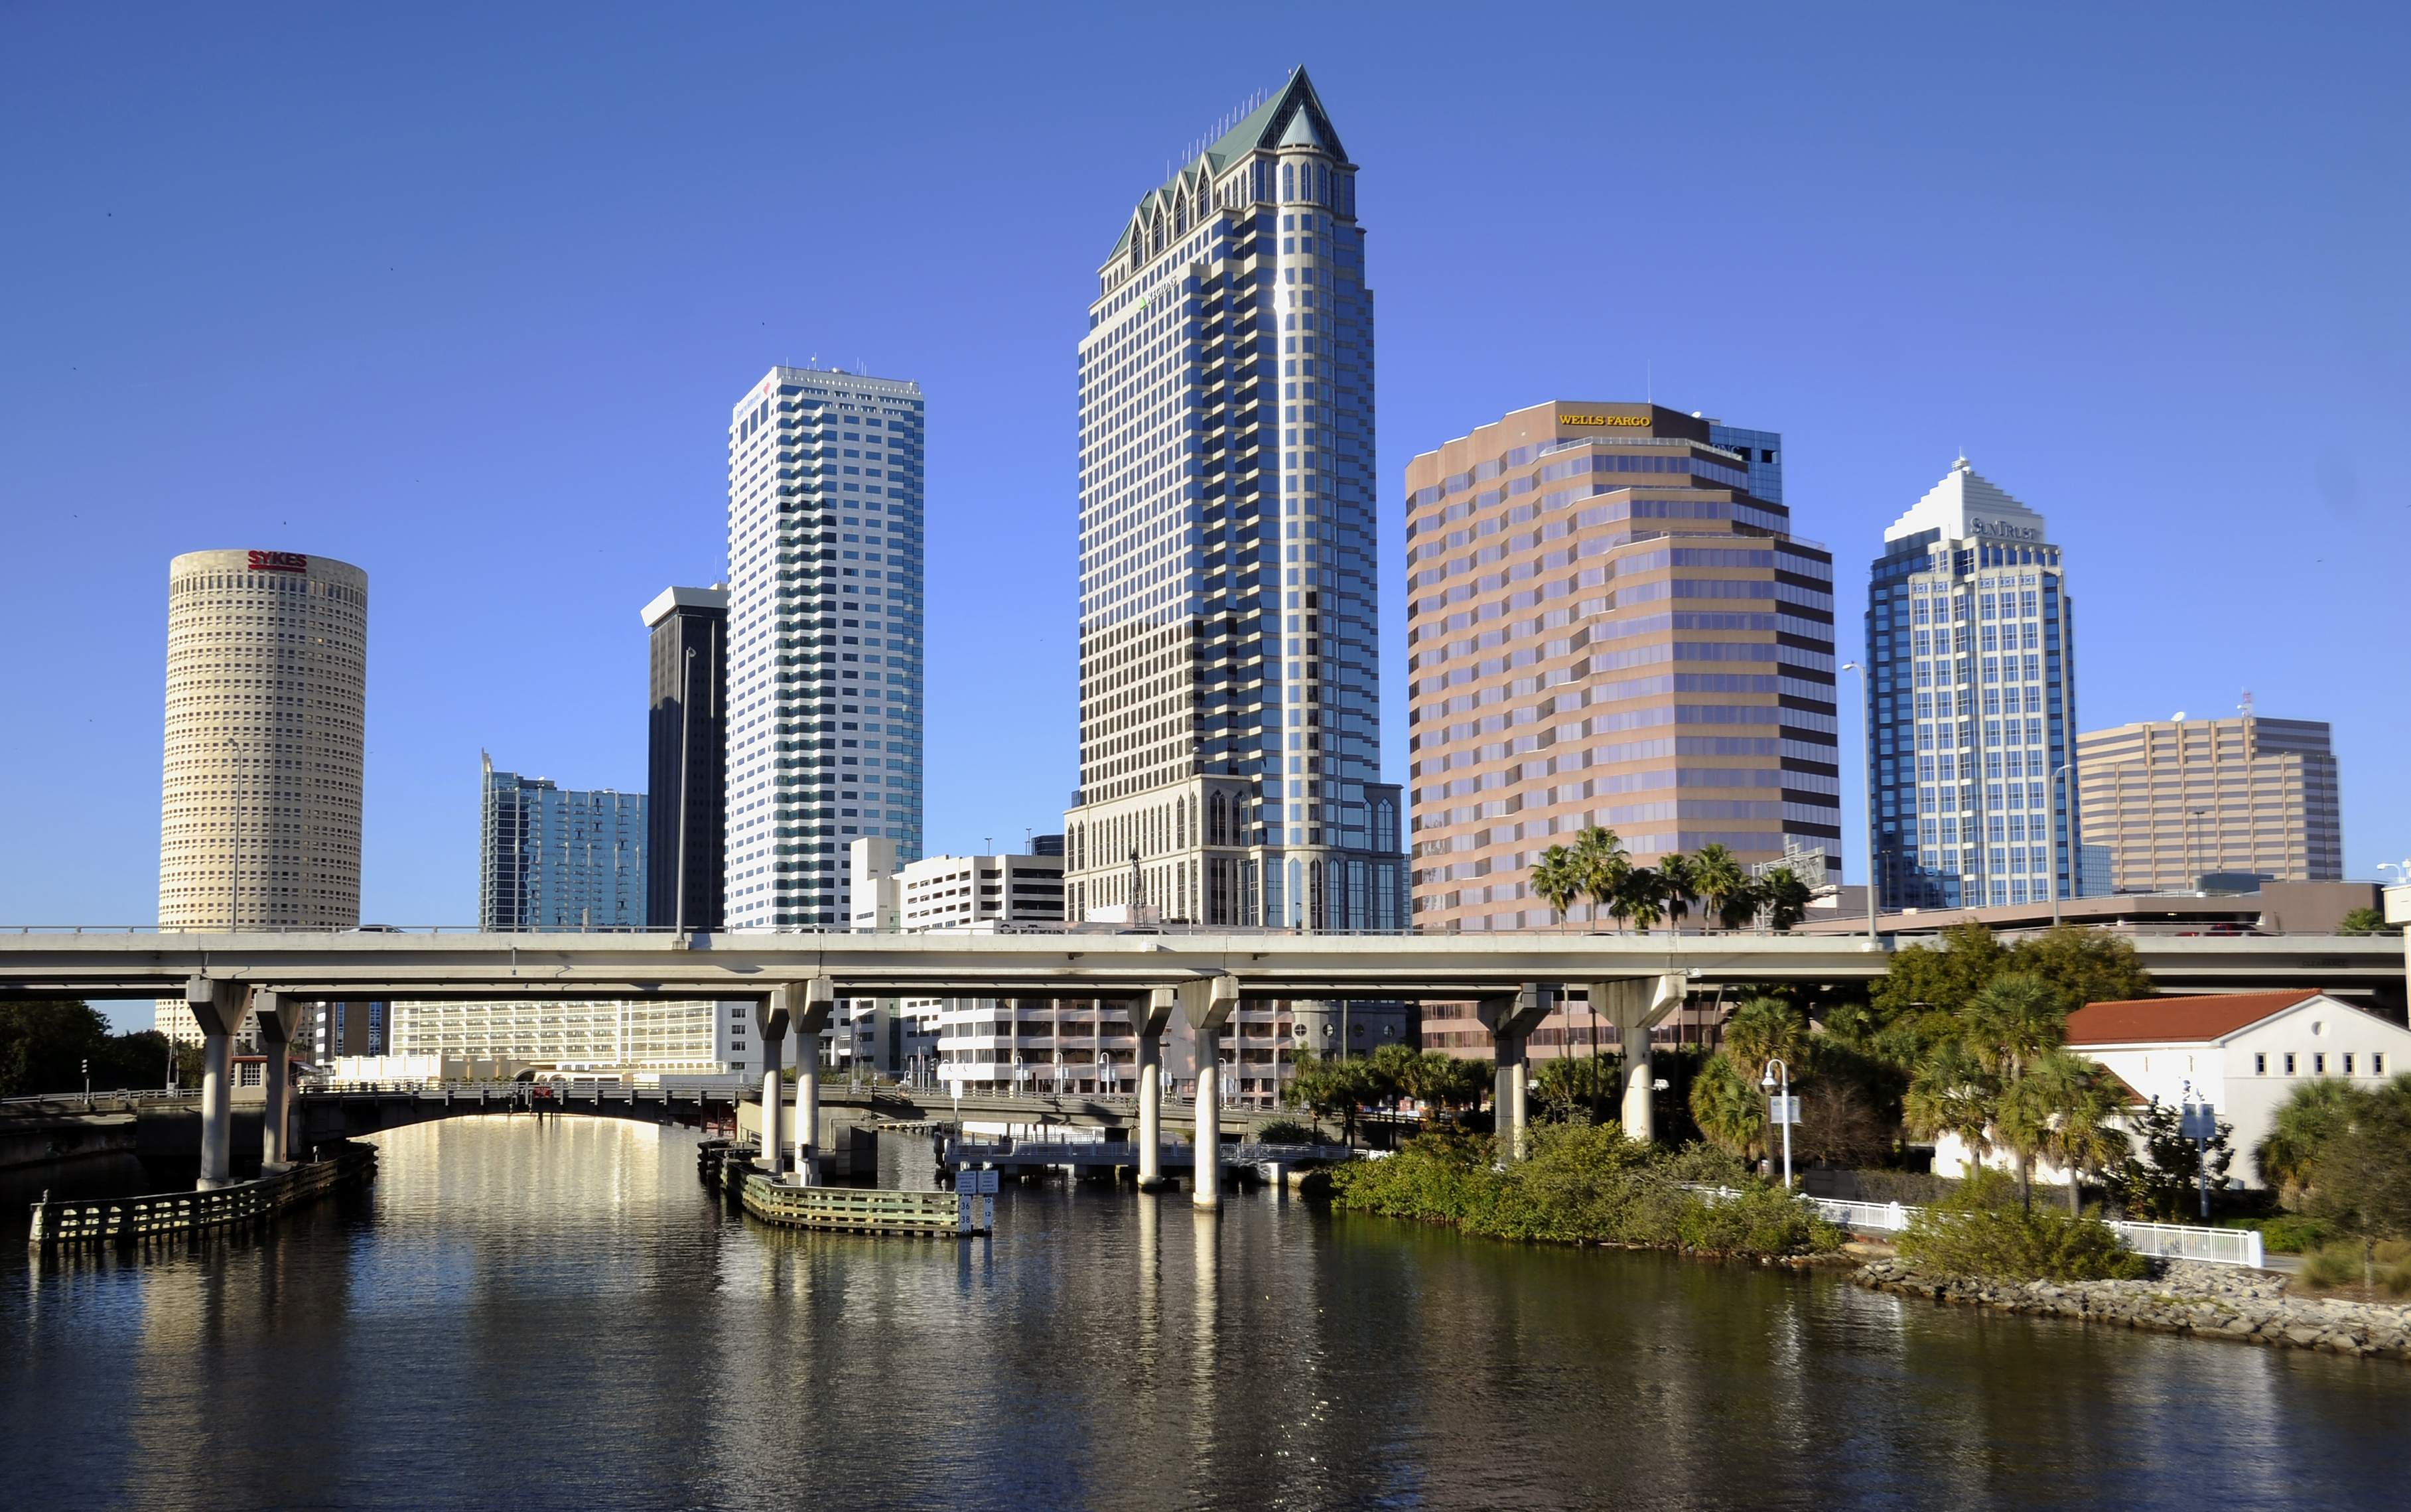 how economically competitive is tampa bay versus similar cities how economically competitive is tampa bay versus similar cities